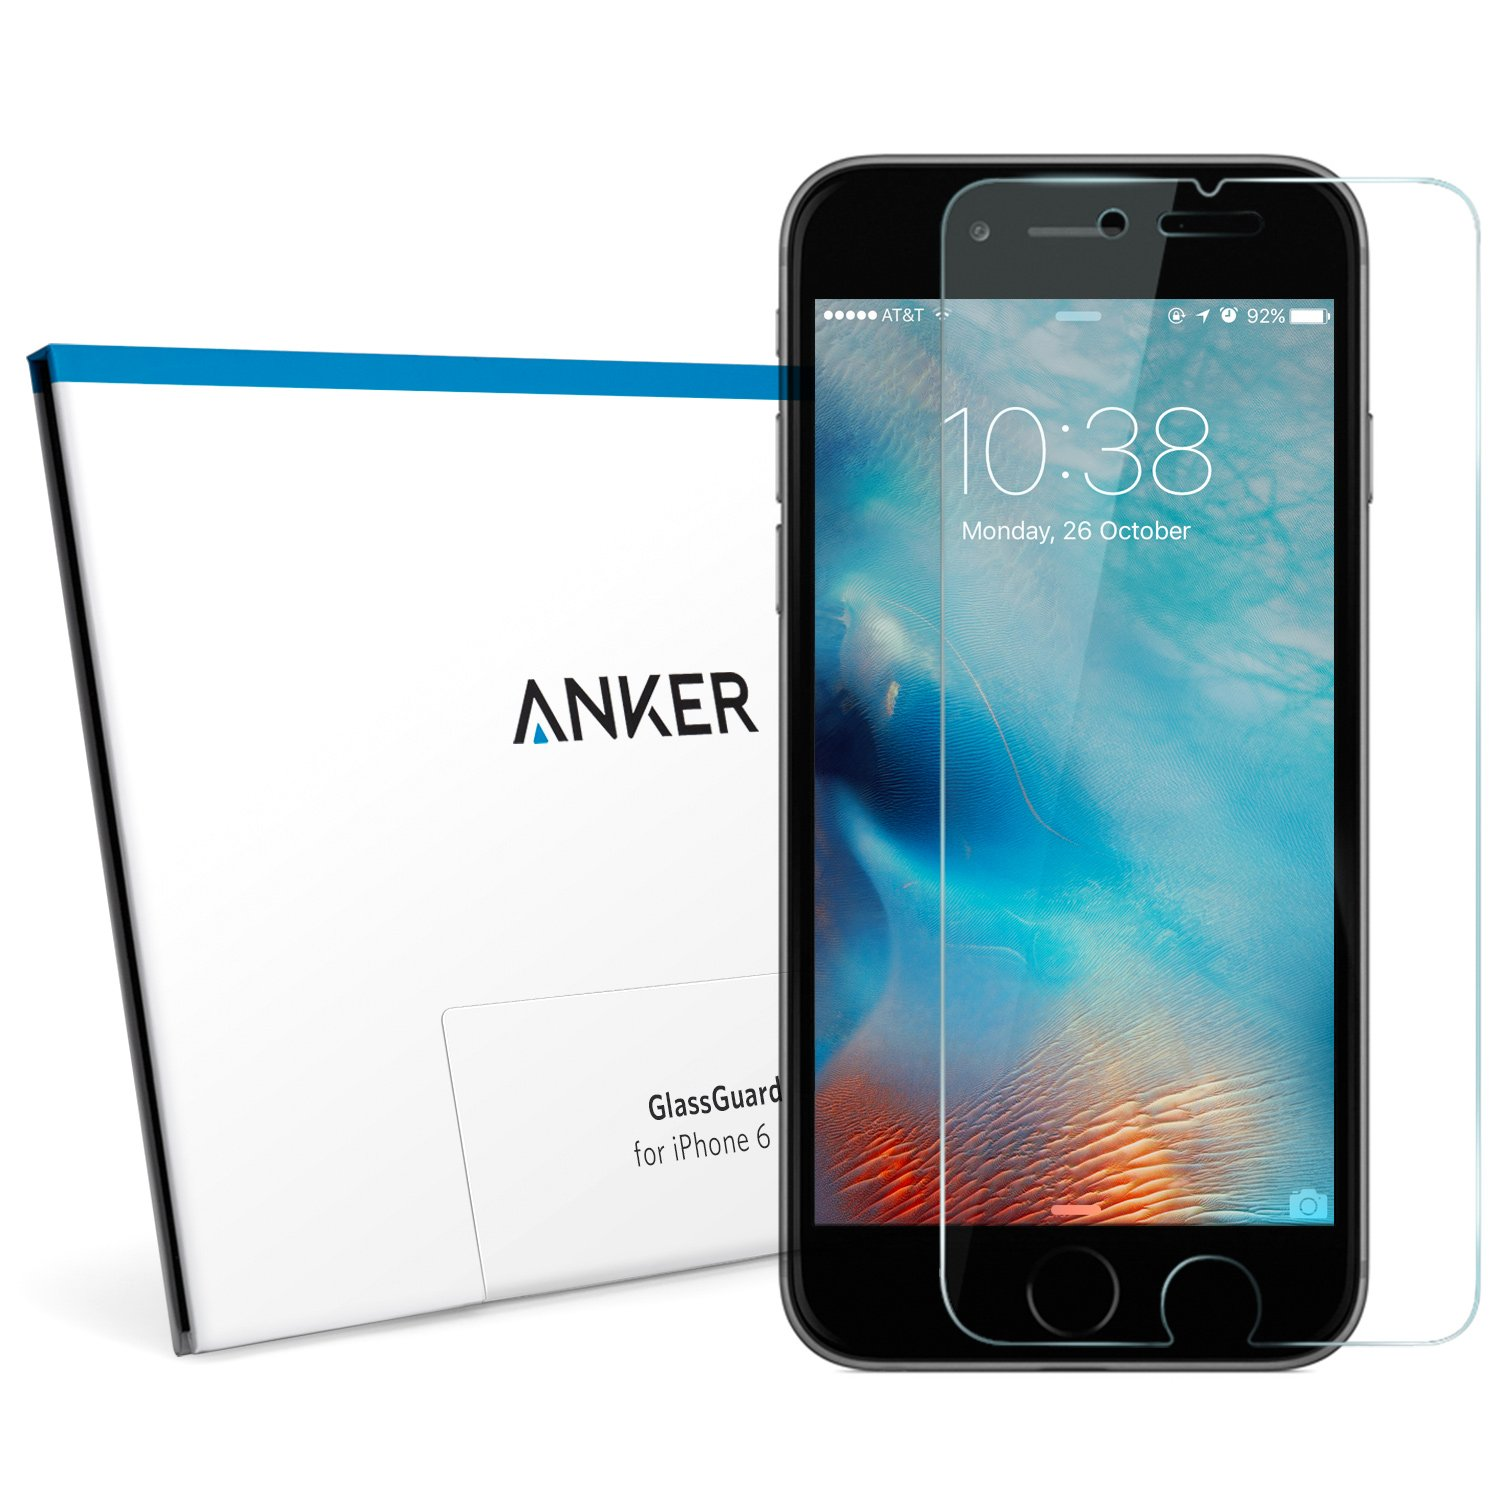 Anker GlassGuard(iPhone 6 / 6s)